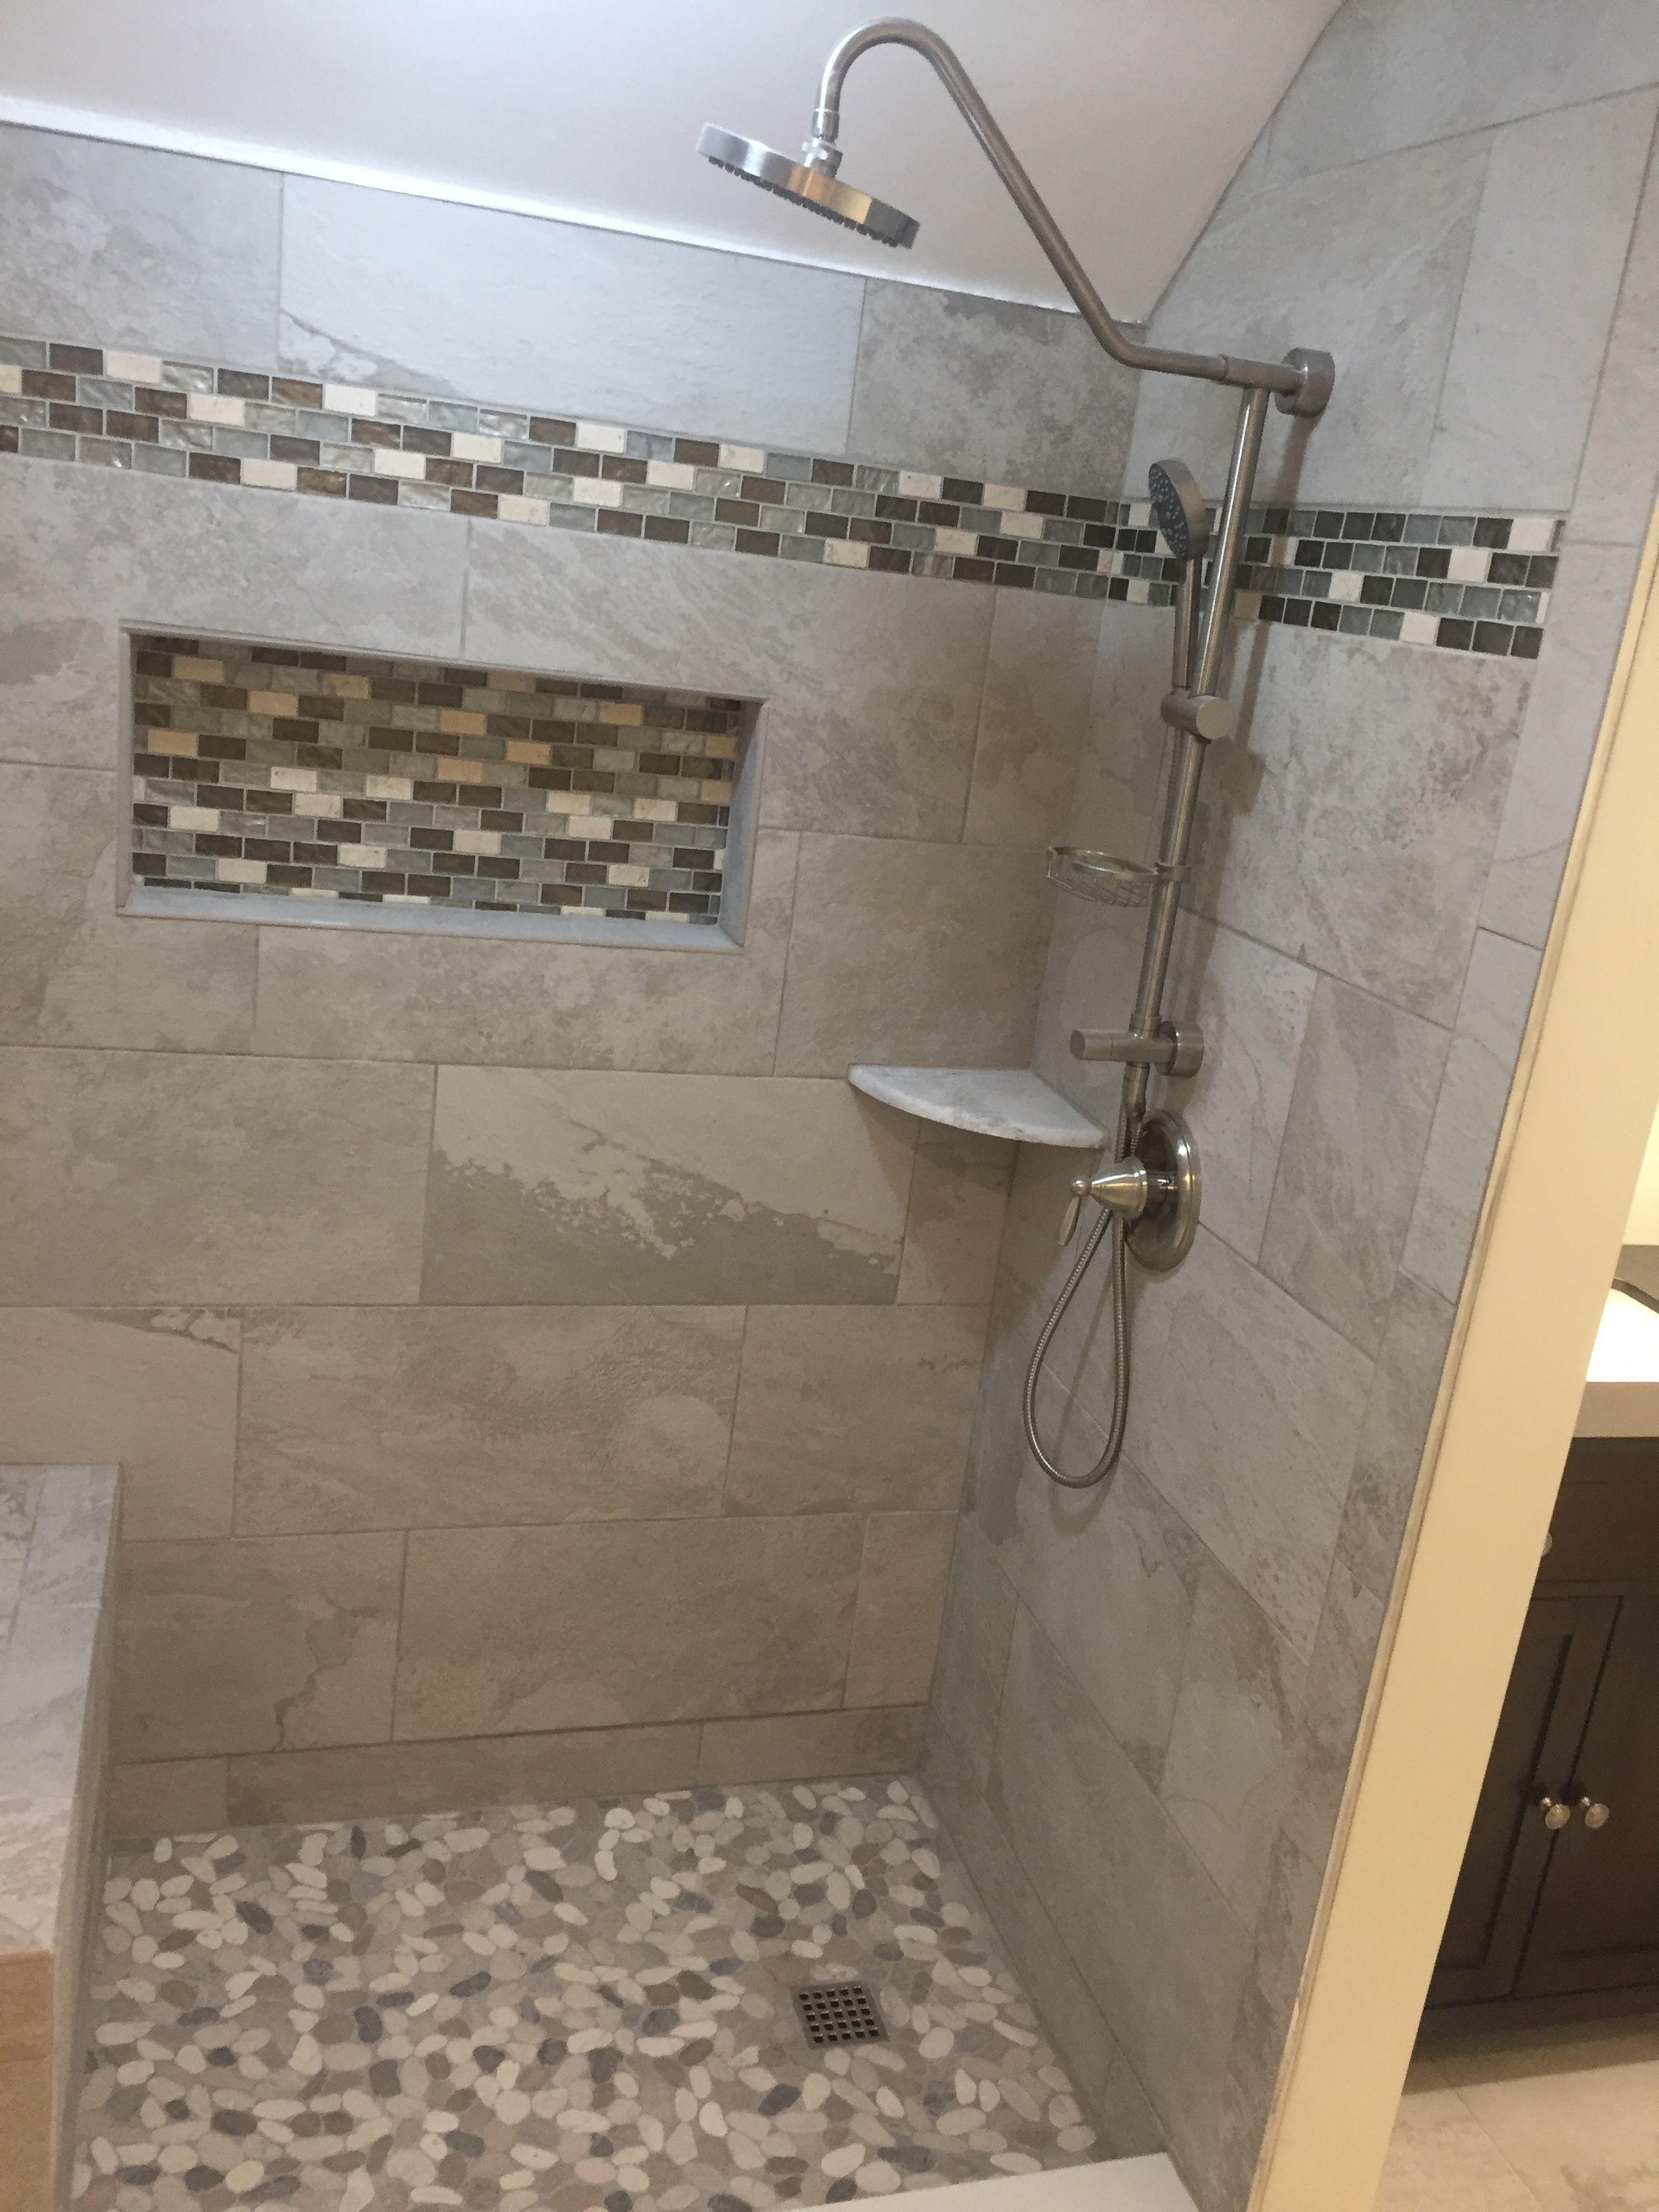 Mosaic border tiles bathrooms - Ivetta White Tiles And Mosaic Border Using The Durock Shower System Curb And Bench